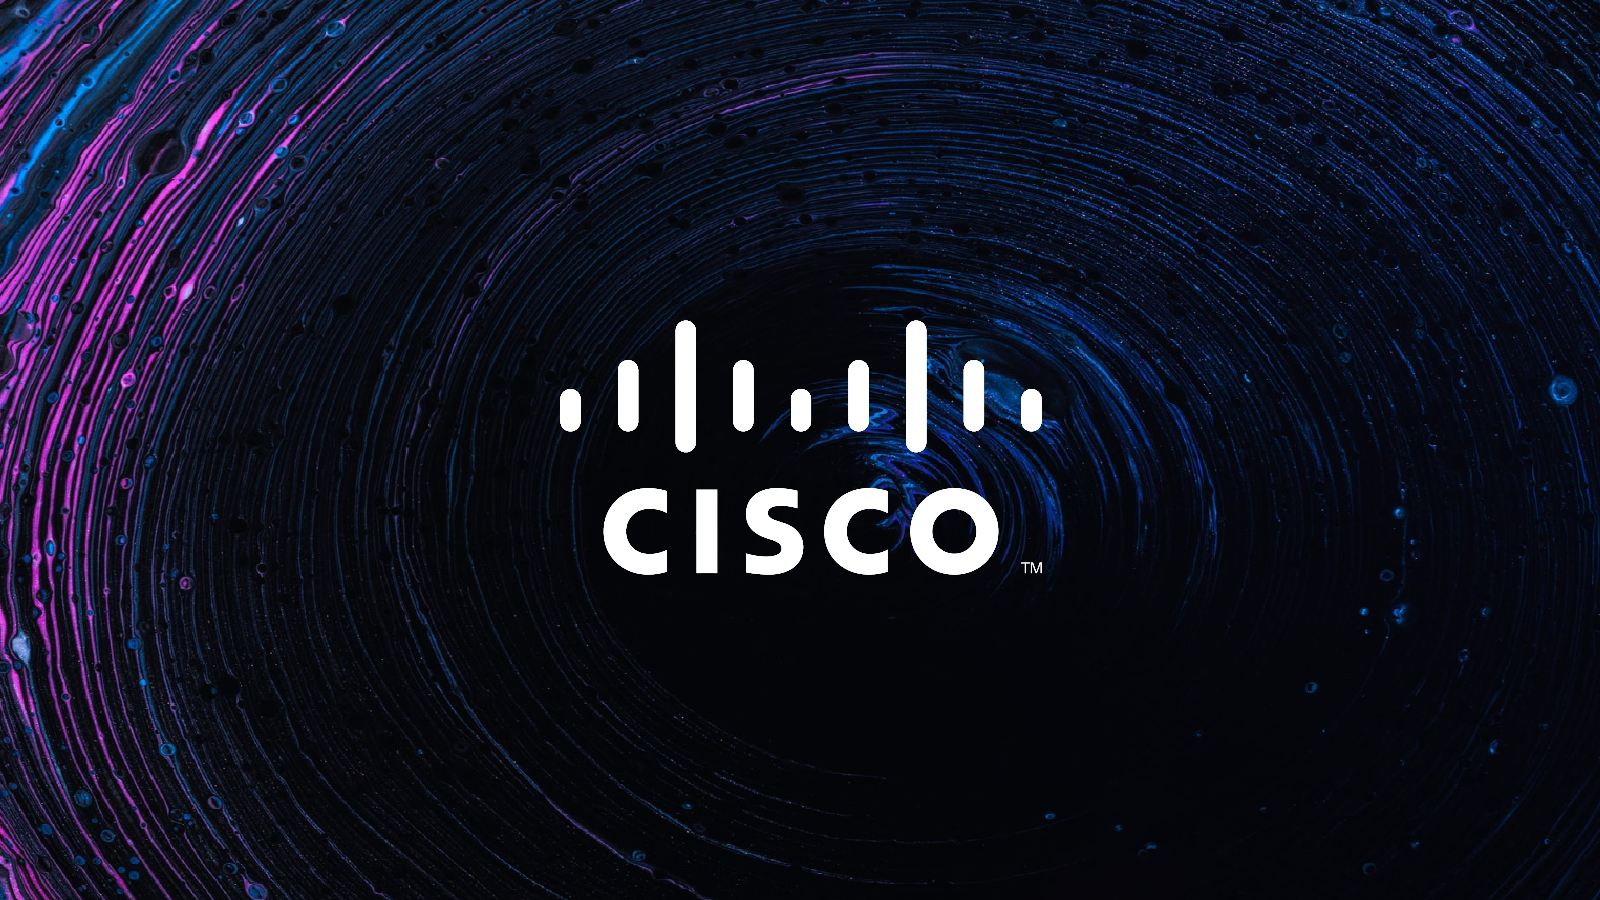 Cisco Fixes Critical High-Severity Pre-Authentication Flaws in VPN Routers